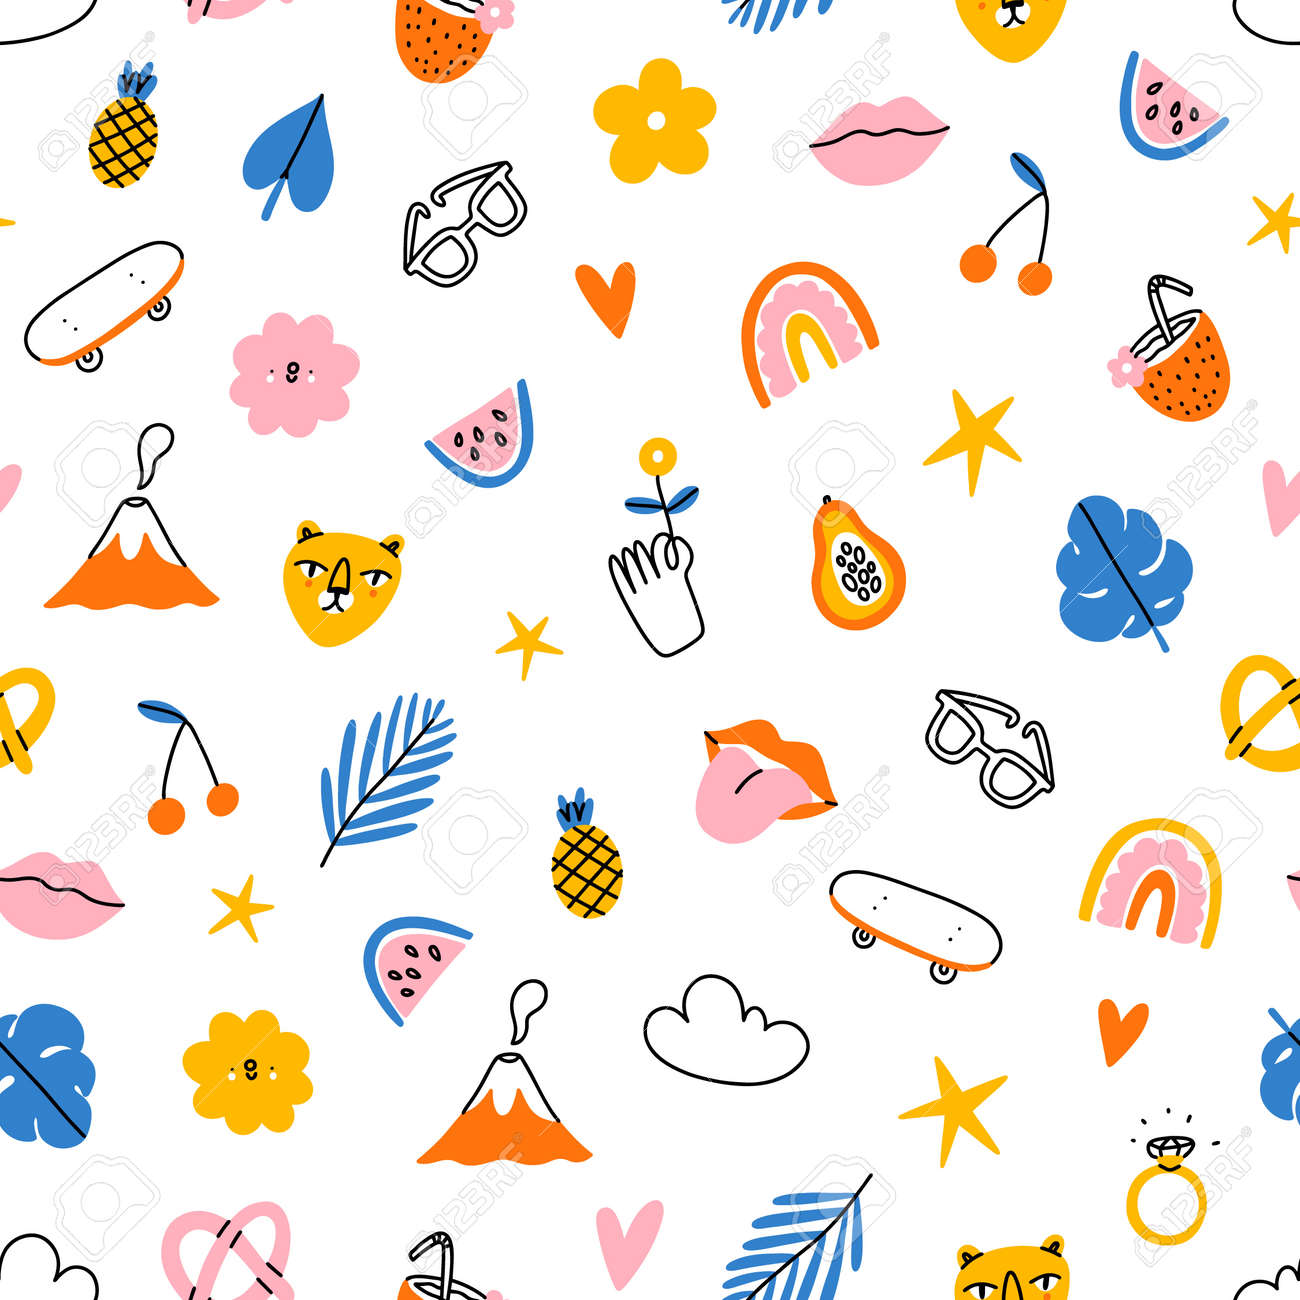 Funky and tropical summer, colorful hipster clip art, vector seamless pattern - 170268193